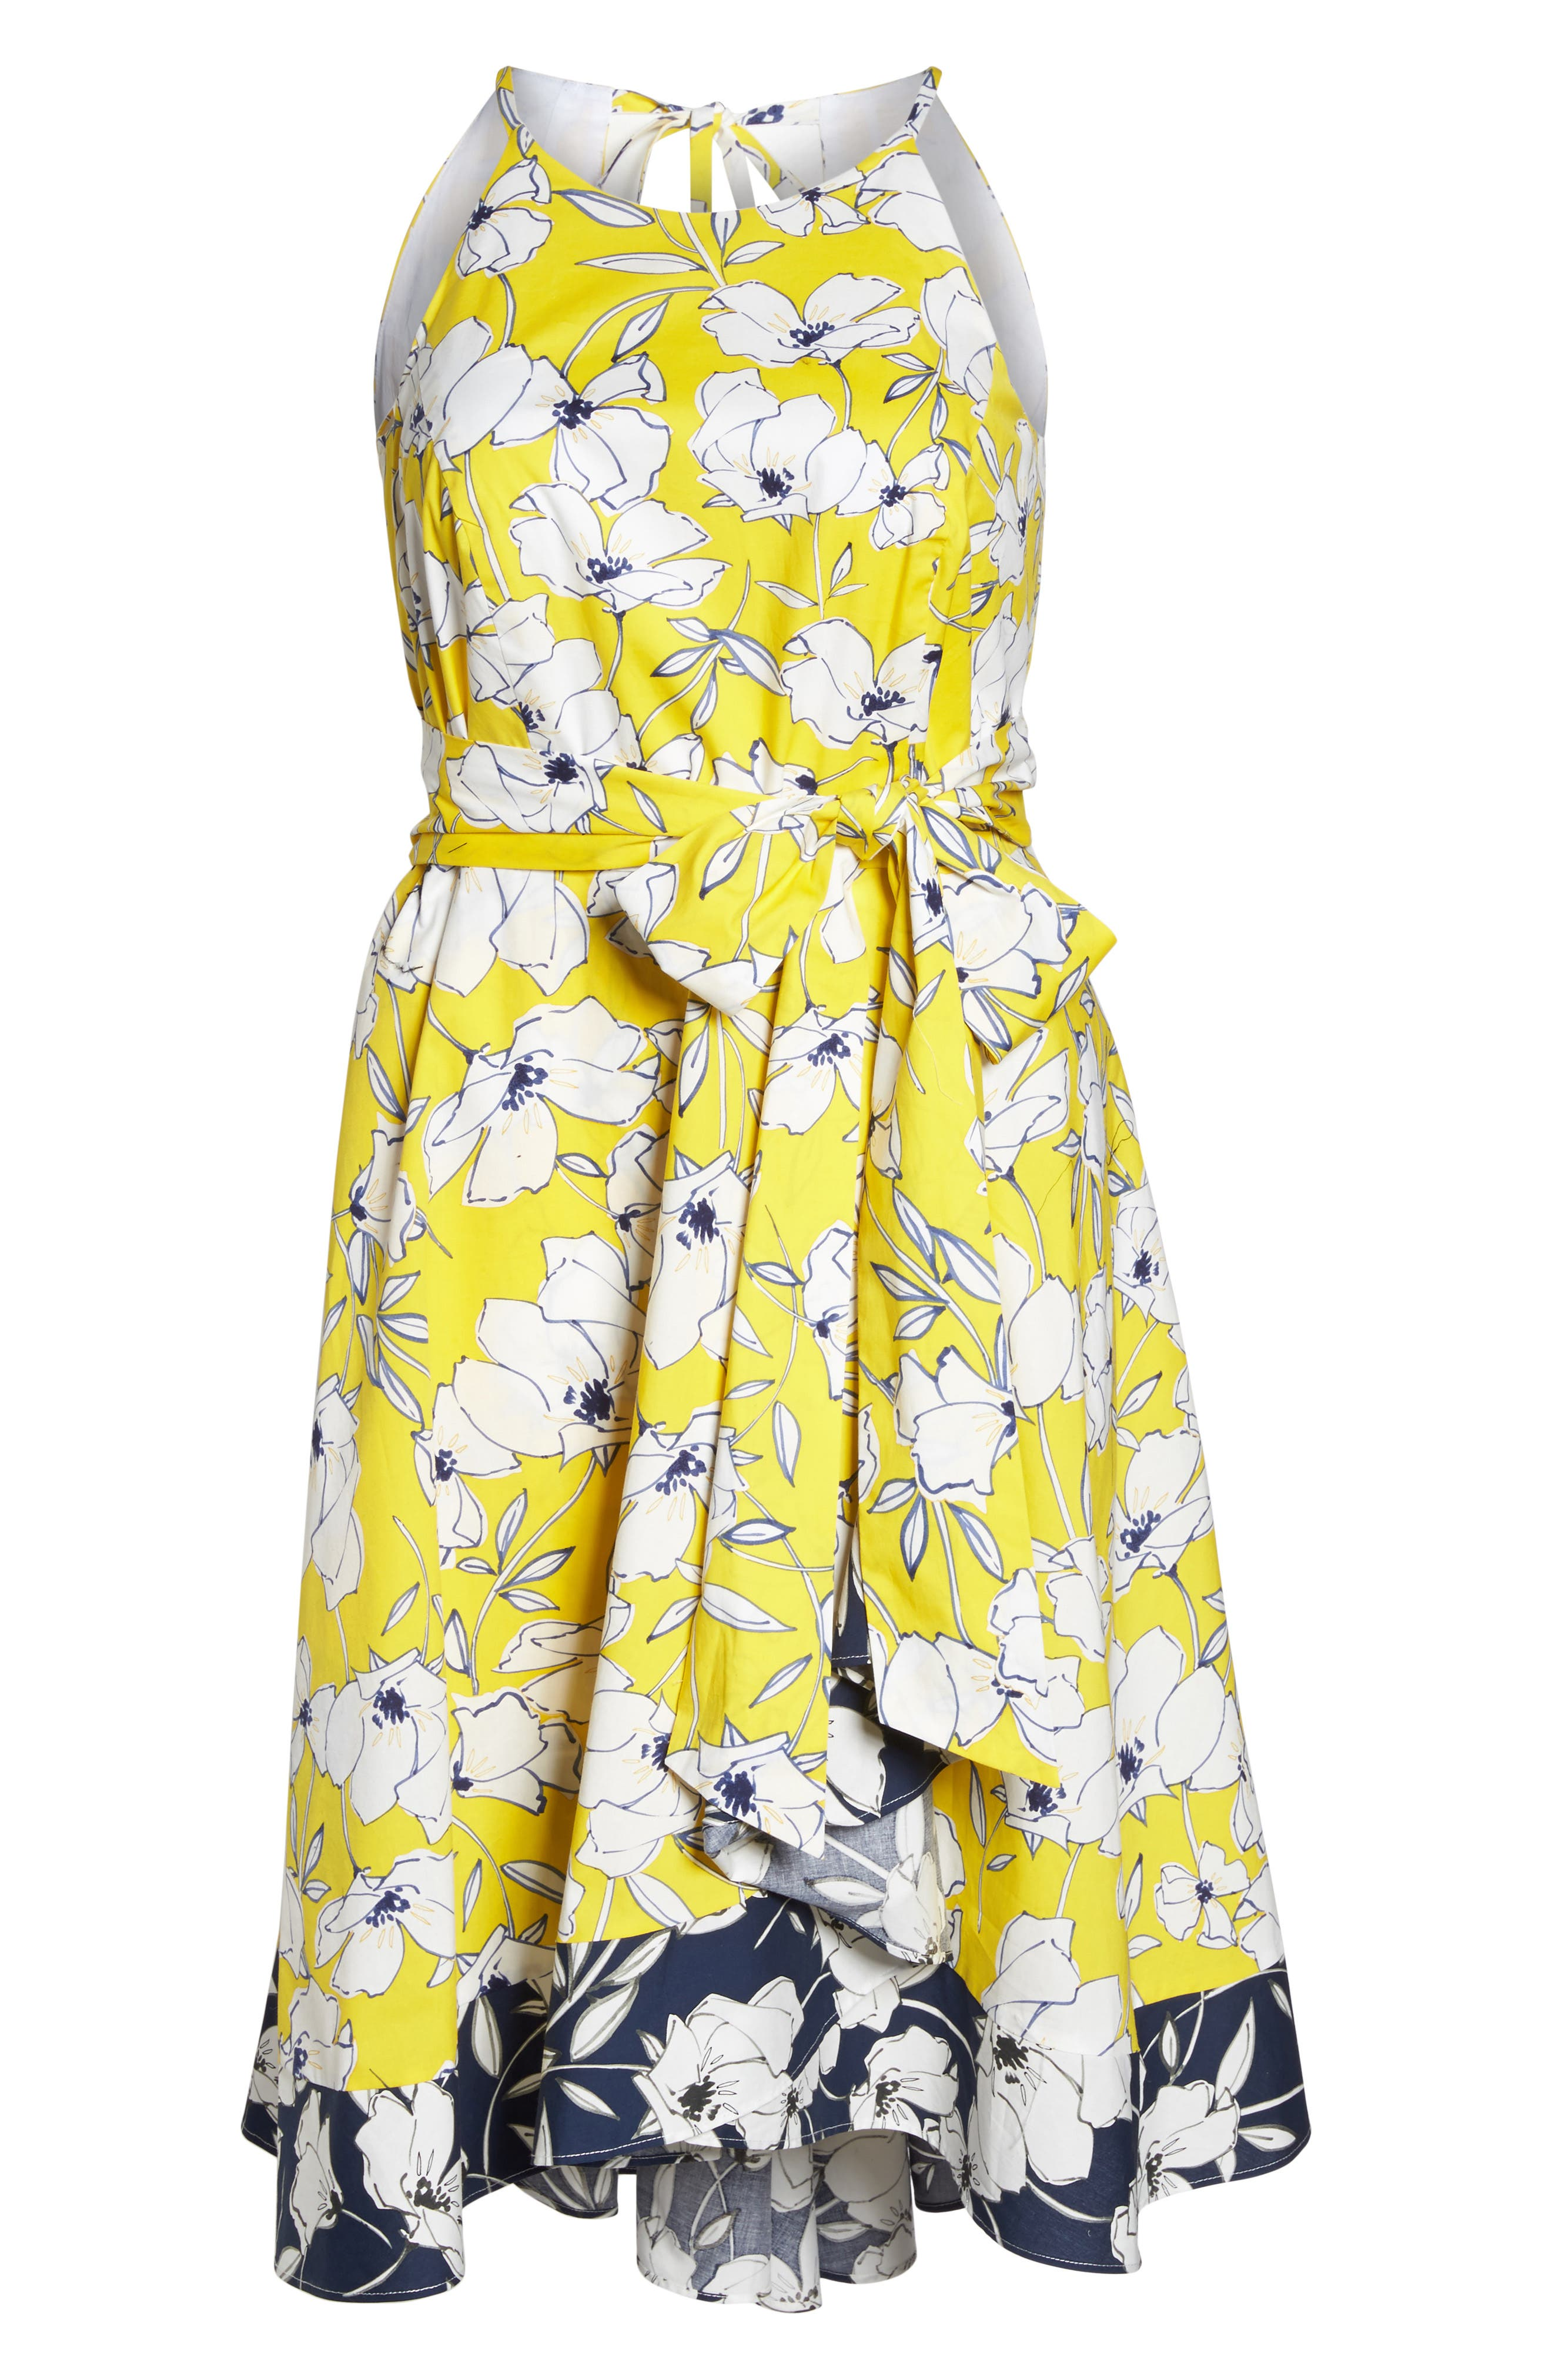 Floral Fit & Flare Dress,                             Alternate thumbnail 7, color,                             Yellow/ Navy/ White